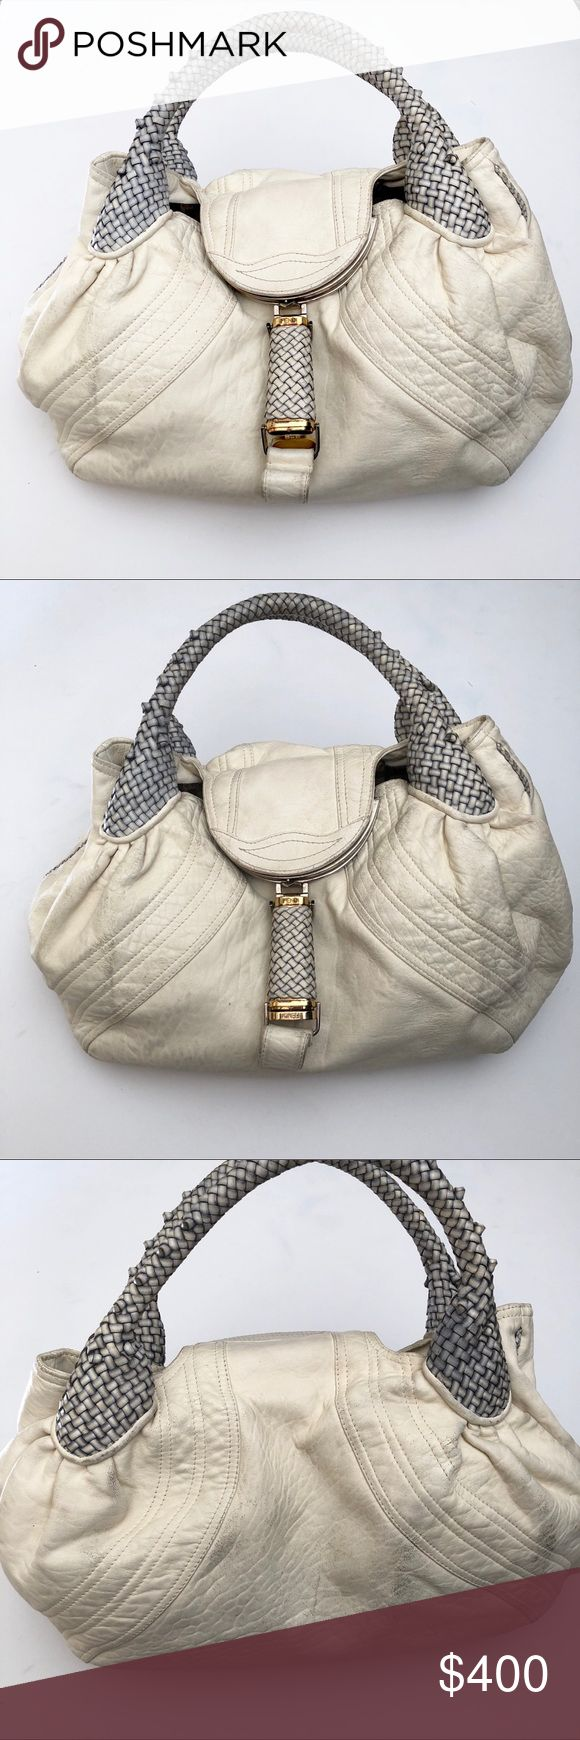 """Fendi White Blue Nappa Leather Spy Bag 100% authentic. This Spy Bag is popular among celebrities like Paris Hilton + Kim Kardashian! Cream leather, blue woven handles. Secret compartment on flap closure and one on the handle. Dark marks are not dirtiness but cracking leather. Please check all photos. PRICE REFLECTS CONDITION Authentic Code:2415-8BR511-RQ1-068 Measurements:16"""" L x 6"""" W x 9.75"""" H Overall Cond: Good, used w/ flaws but lots of life left Exterior:Cracking leather, corner flaws…"""